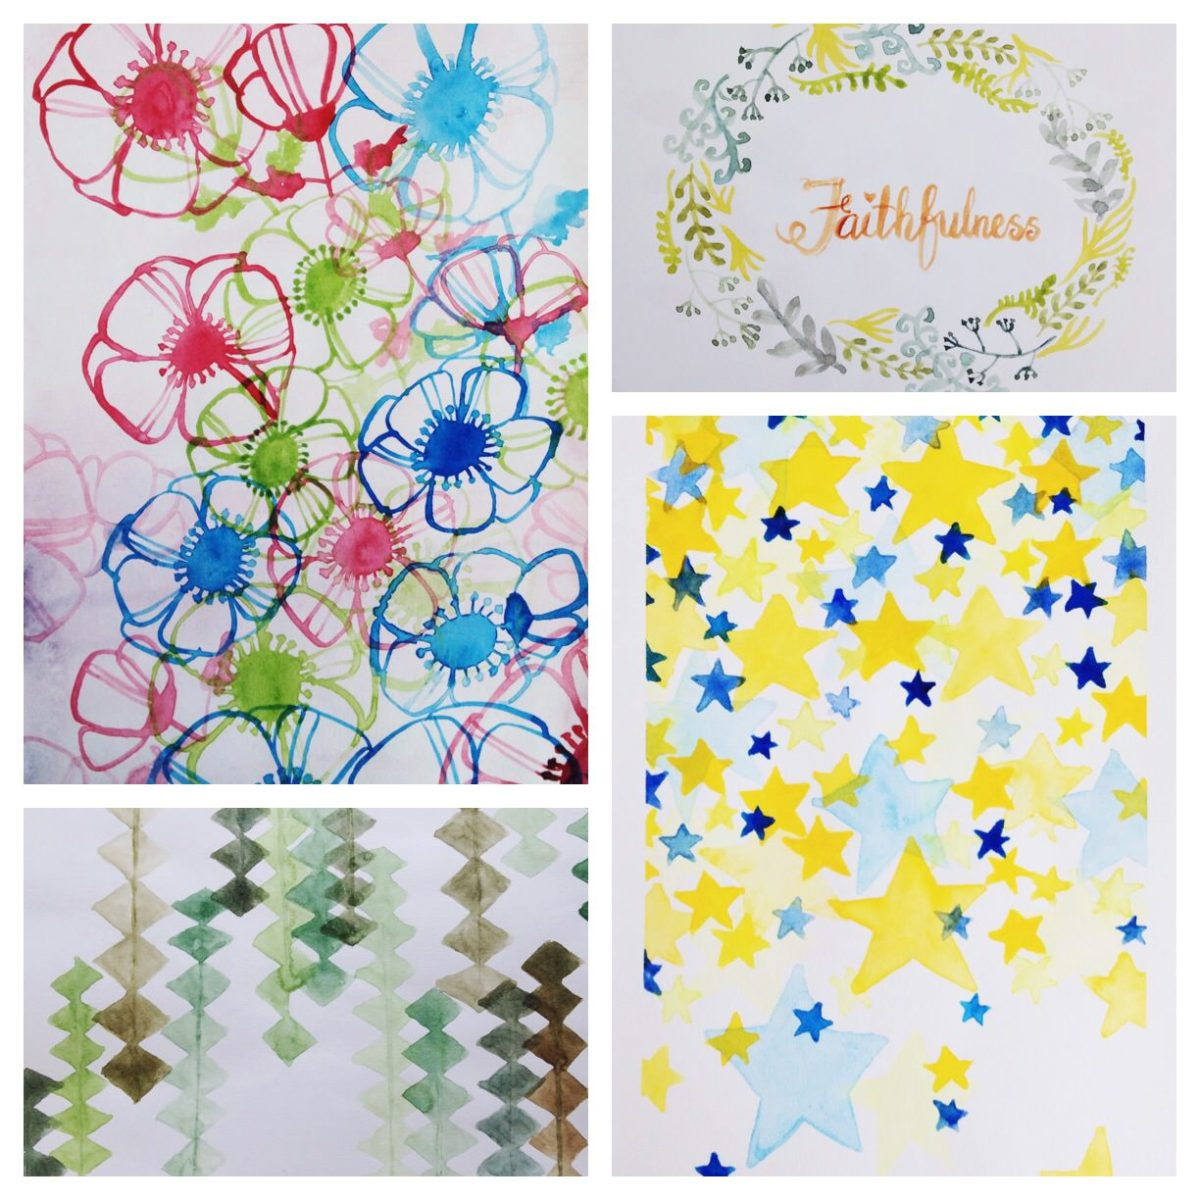 Doodlewashes by Adelyn Siew